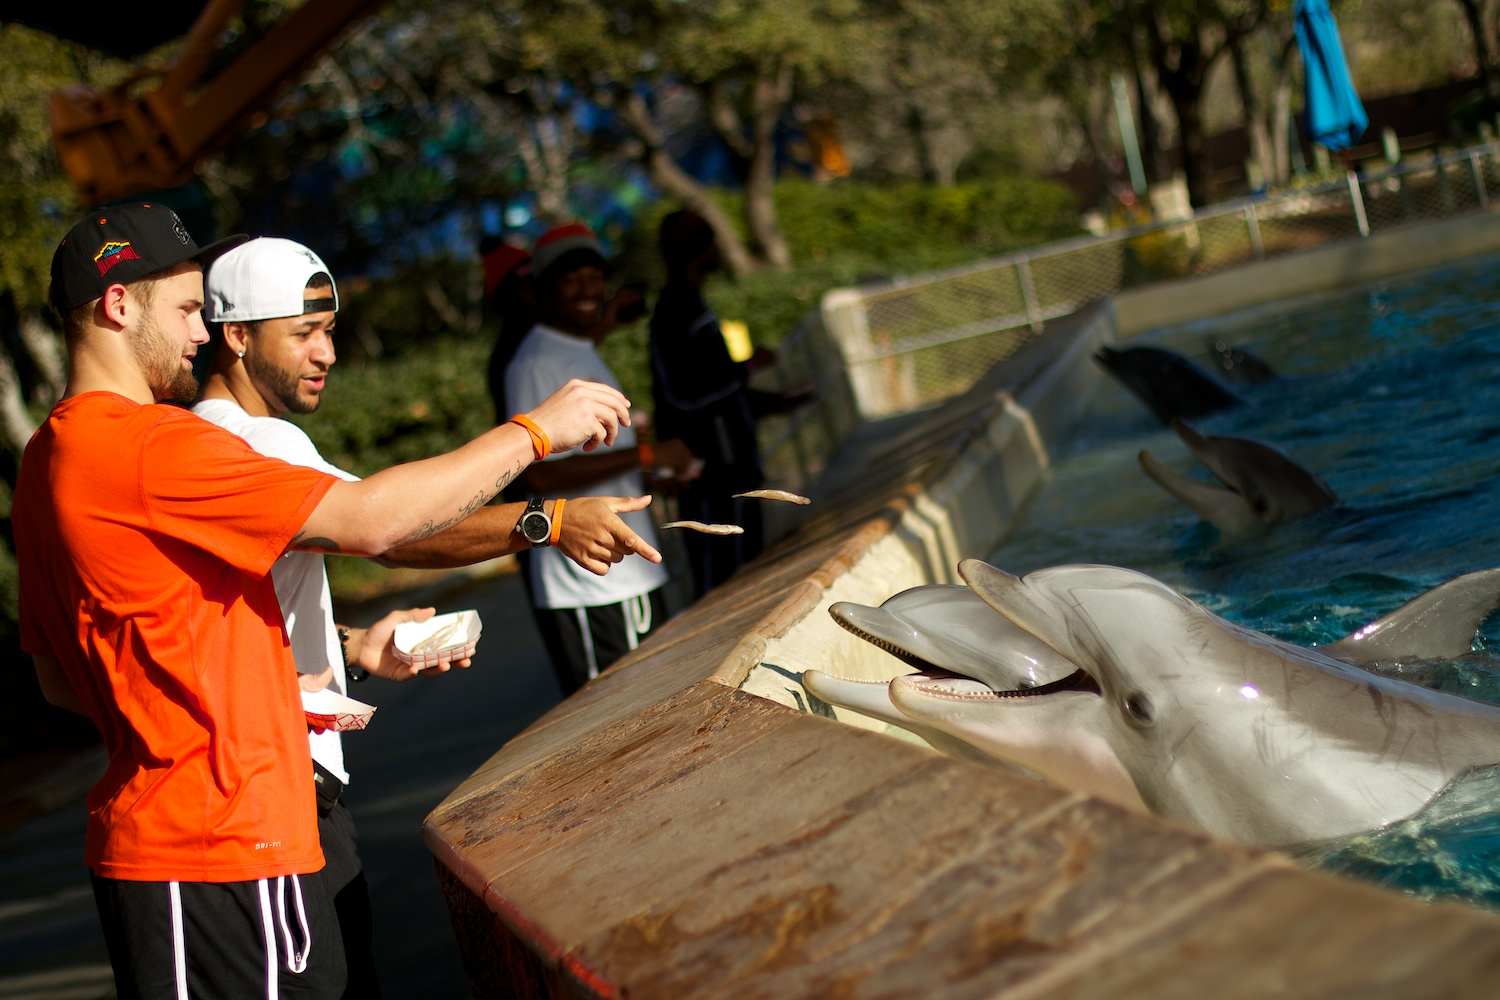 Oregon Sate players hang out at SeaWorld for the moring while in San Antonio, Texas. This was one of the pro-bowl activities for the teams leading up the the Alamo Bowl.